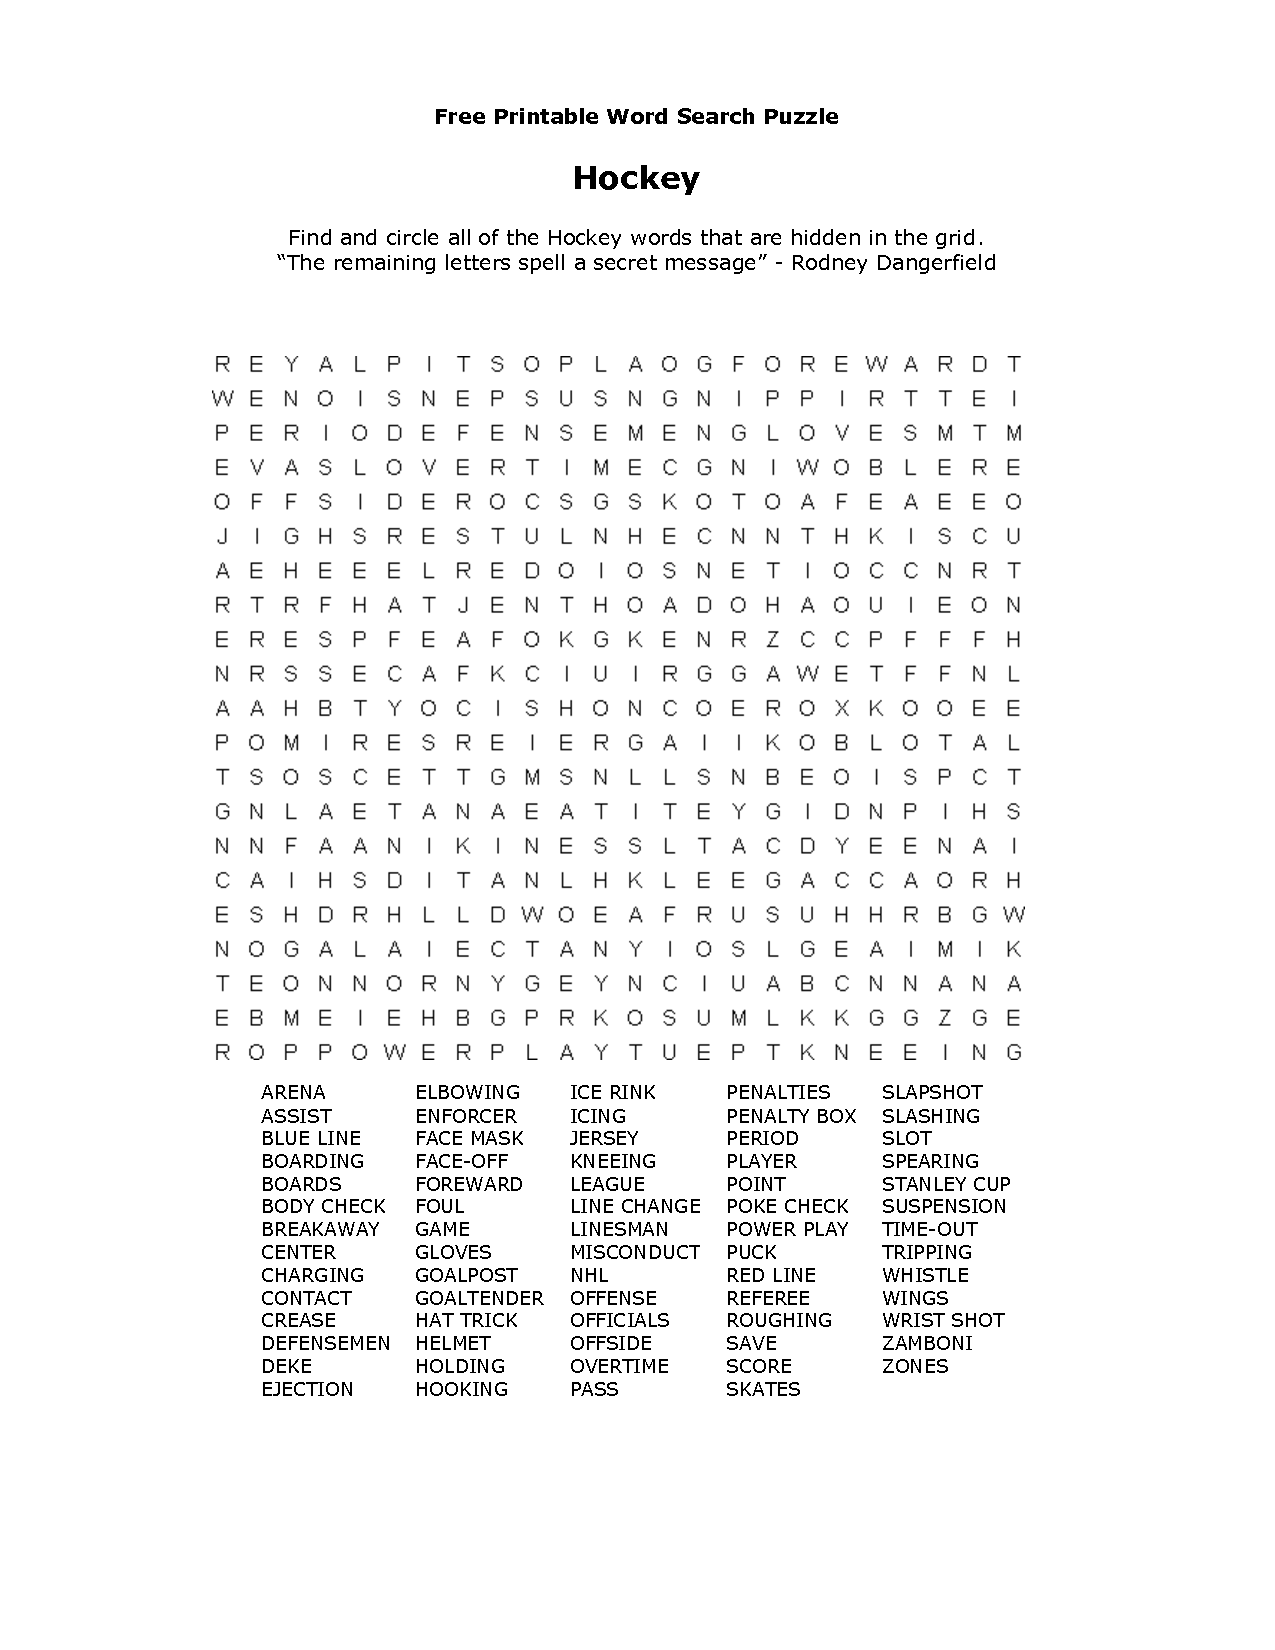 Free Printable Word Searches | Activity Shelter